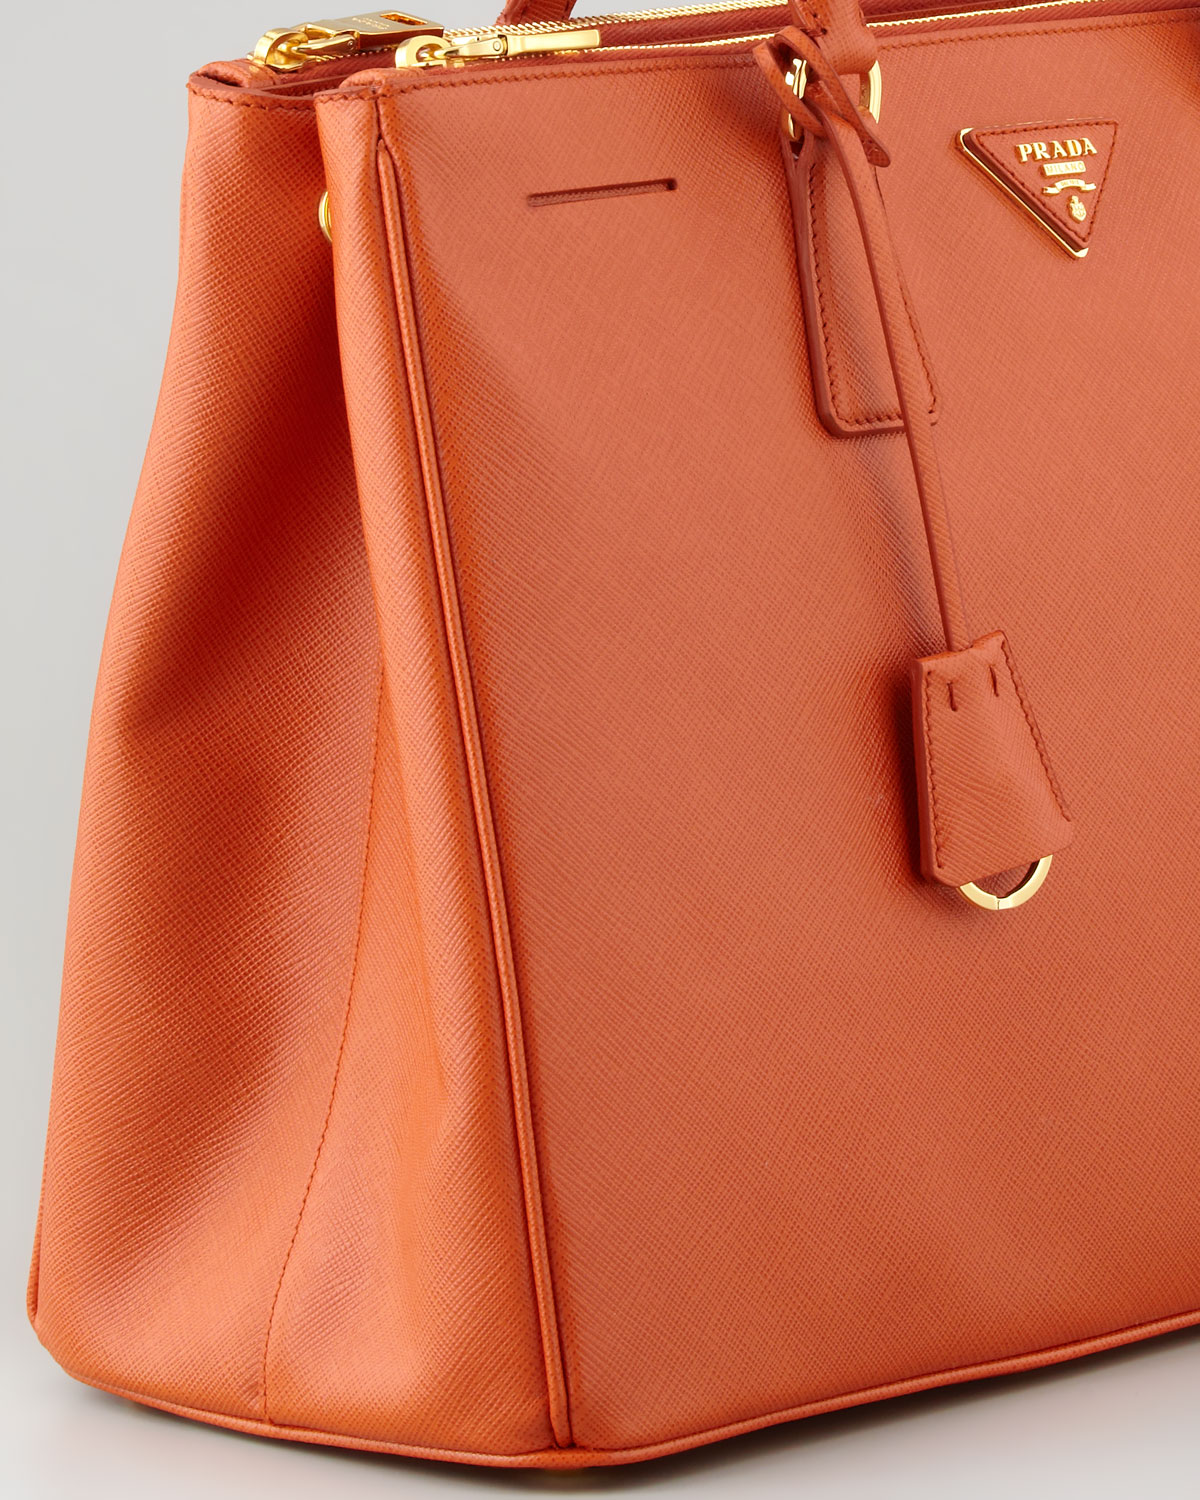 Prada tote orange